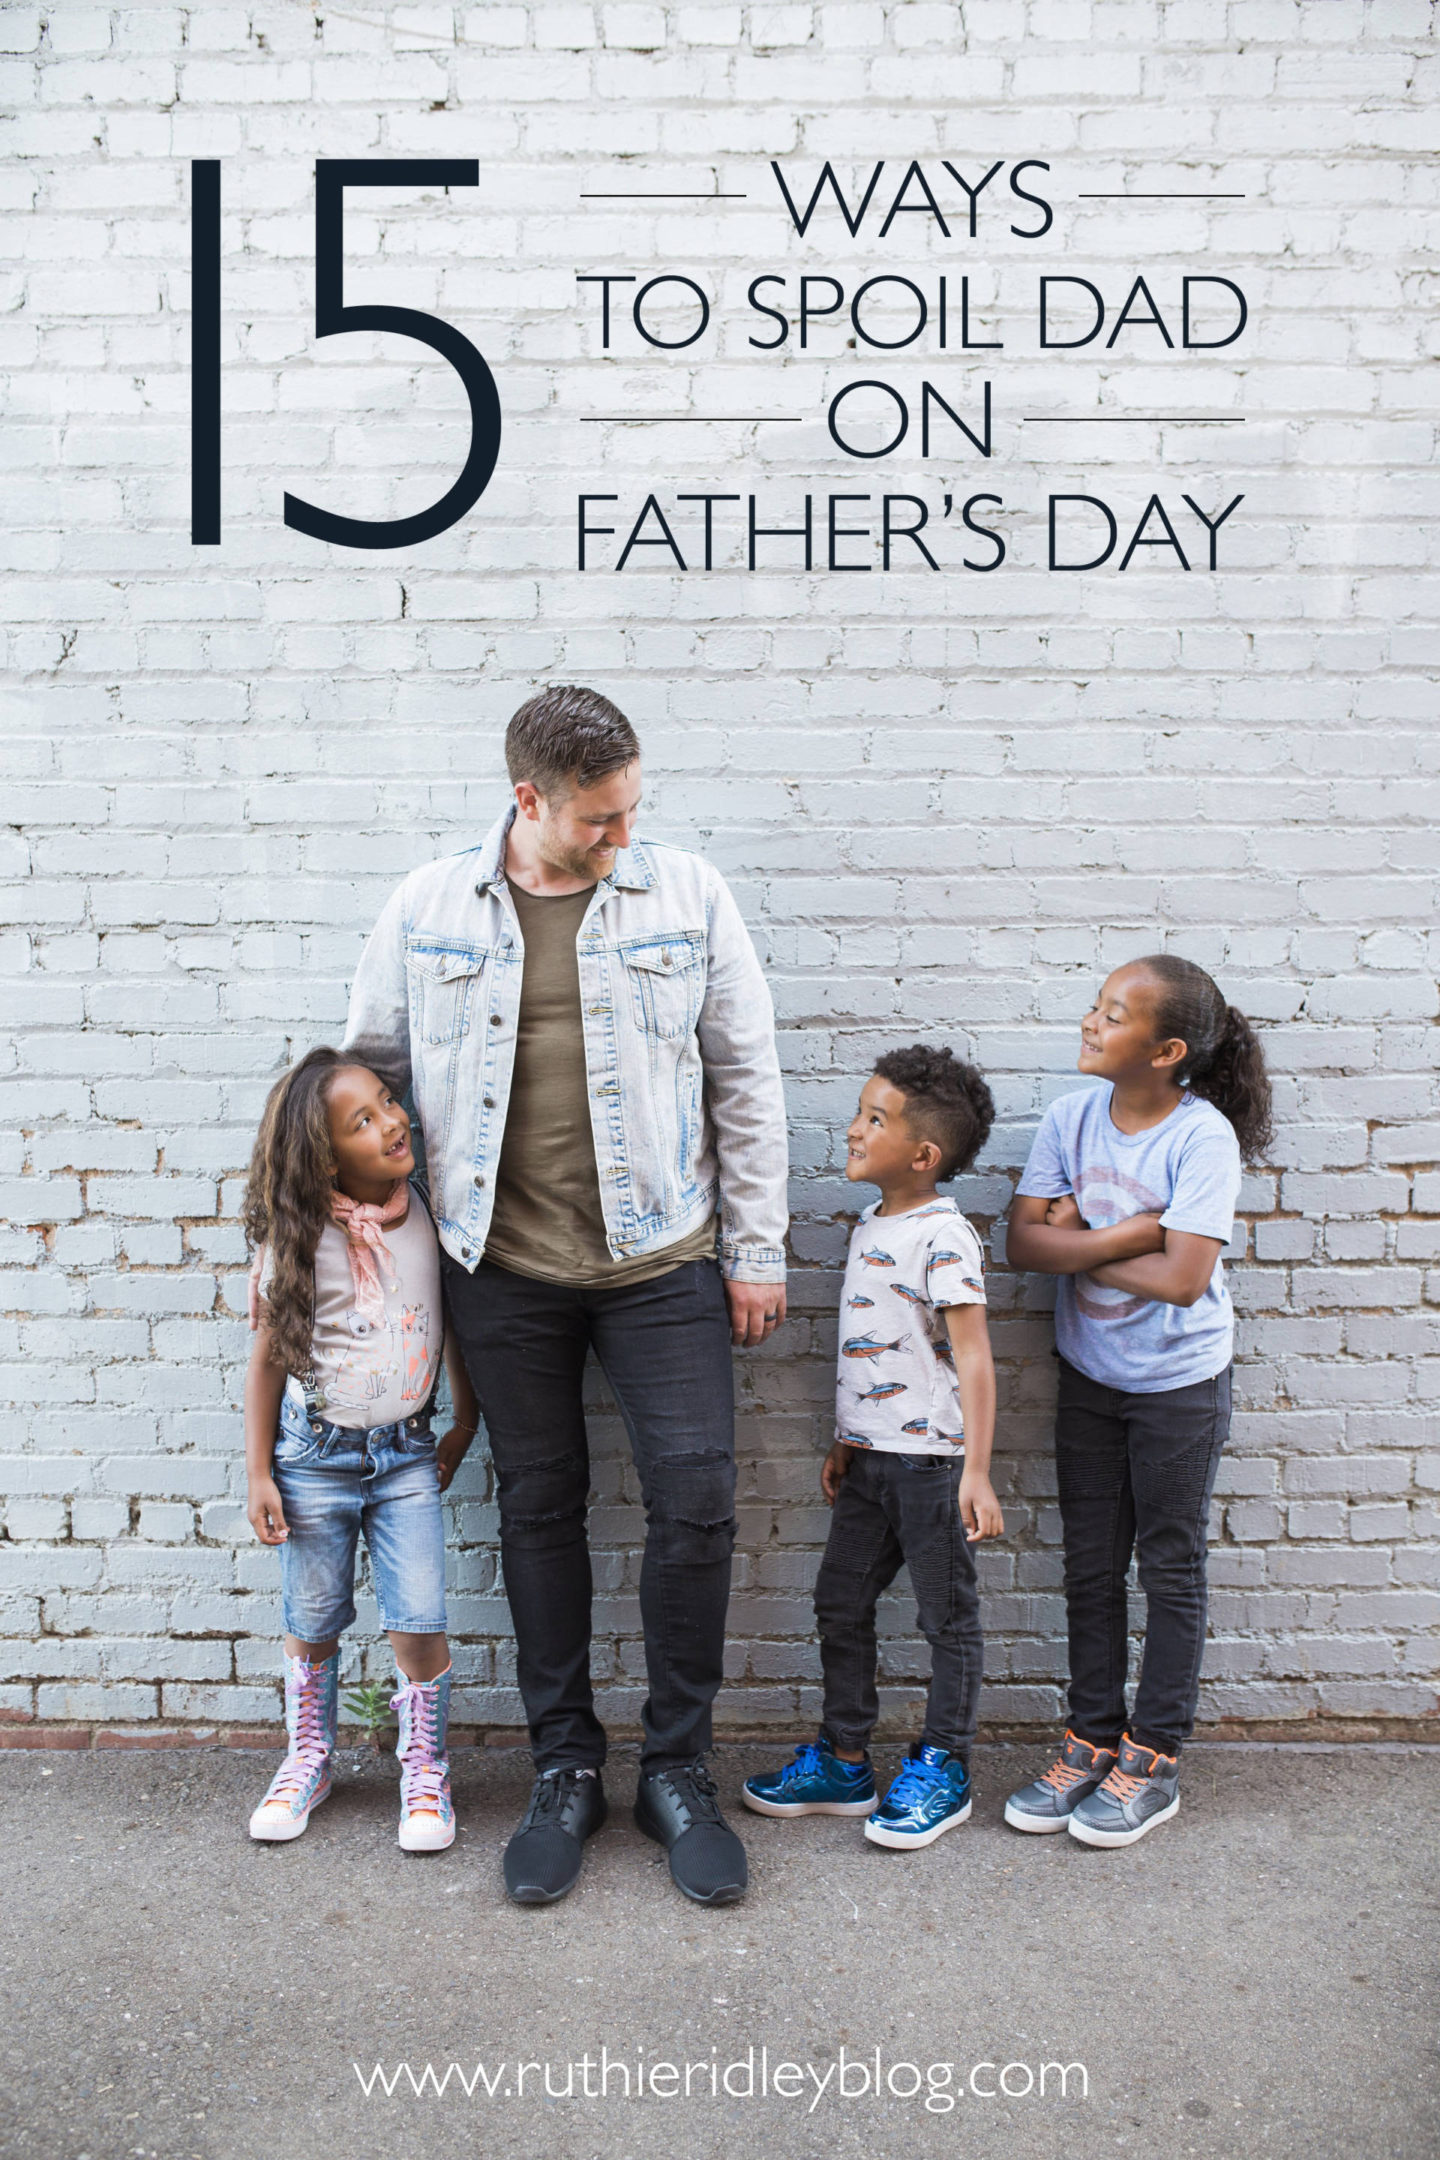 15 Ways To Spoil Dad On Father's Day & Amazing Gift Guides To Give You Ideas To Shop For That Special Guy!!